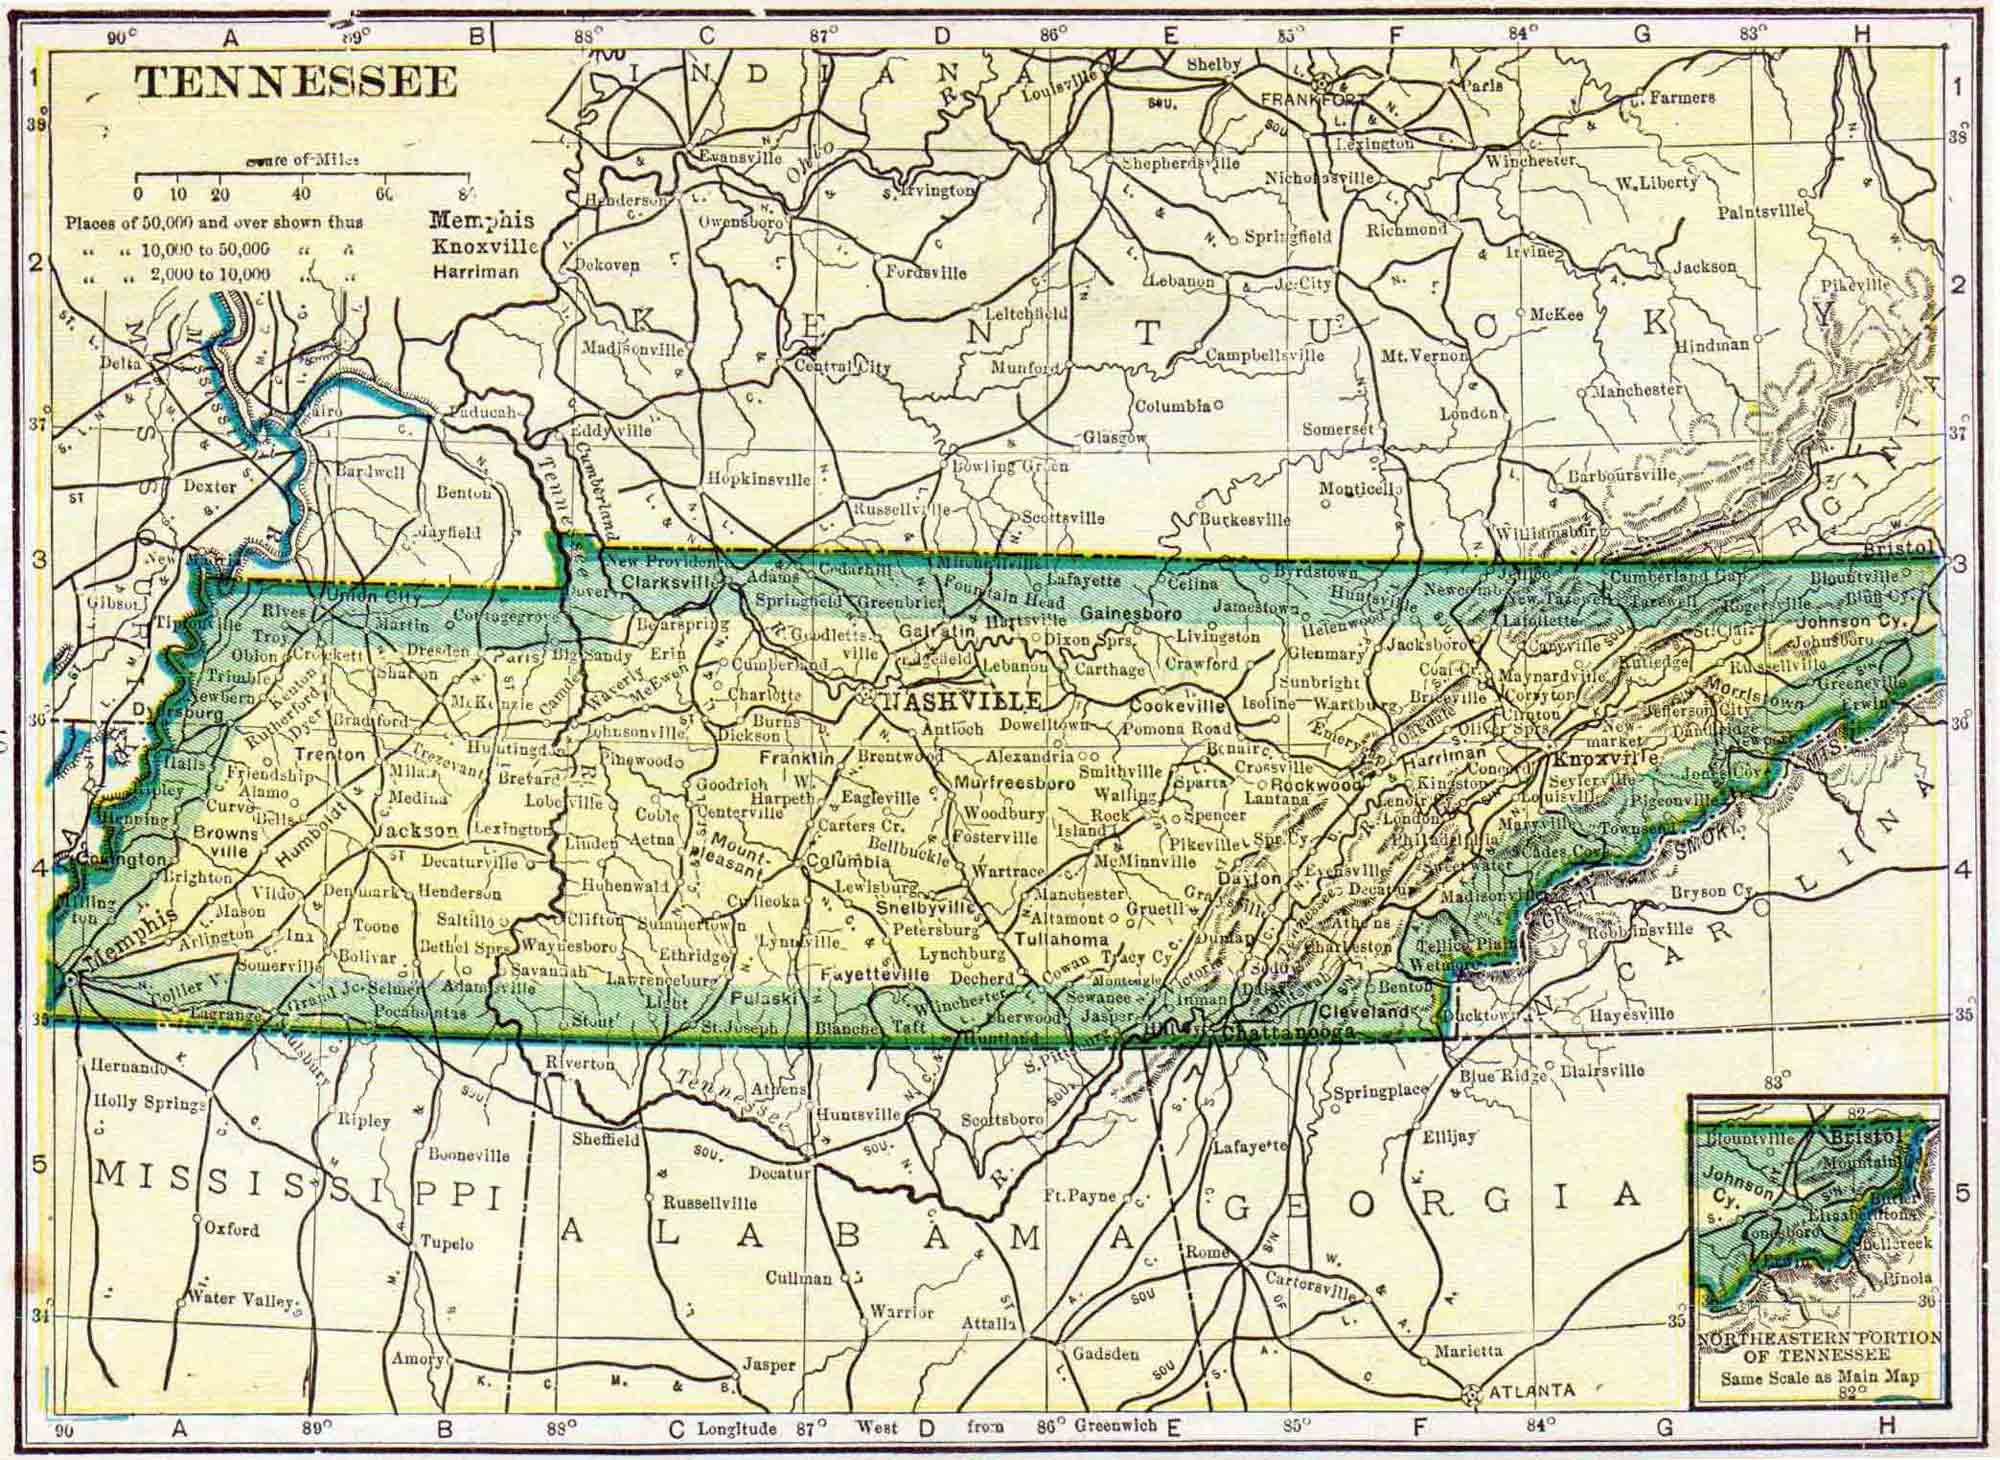 1910 Tennessee Census Map  Access Genealogy